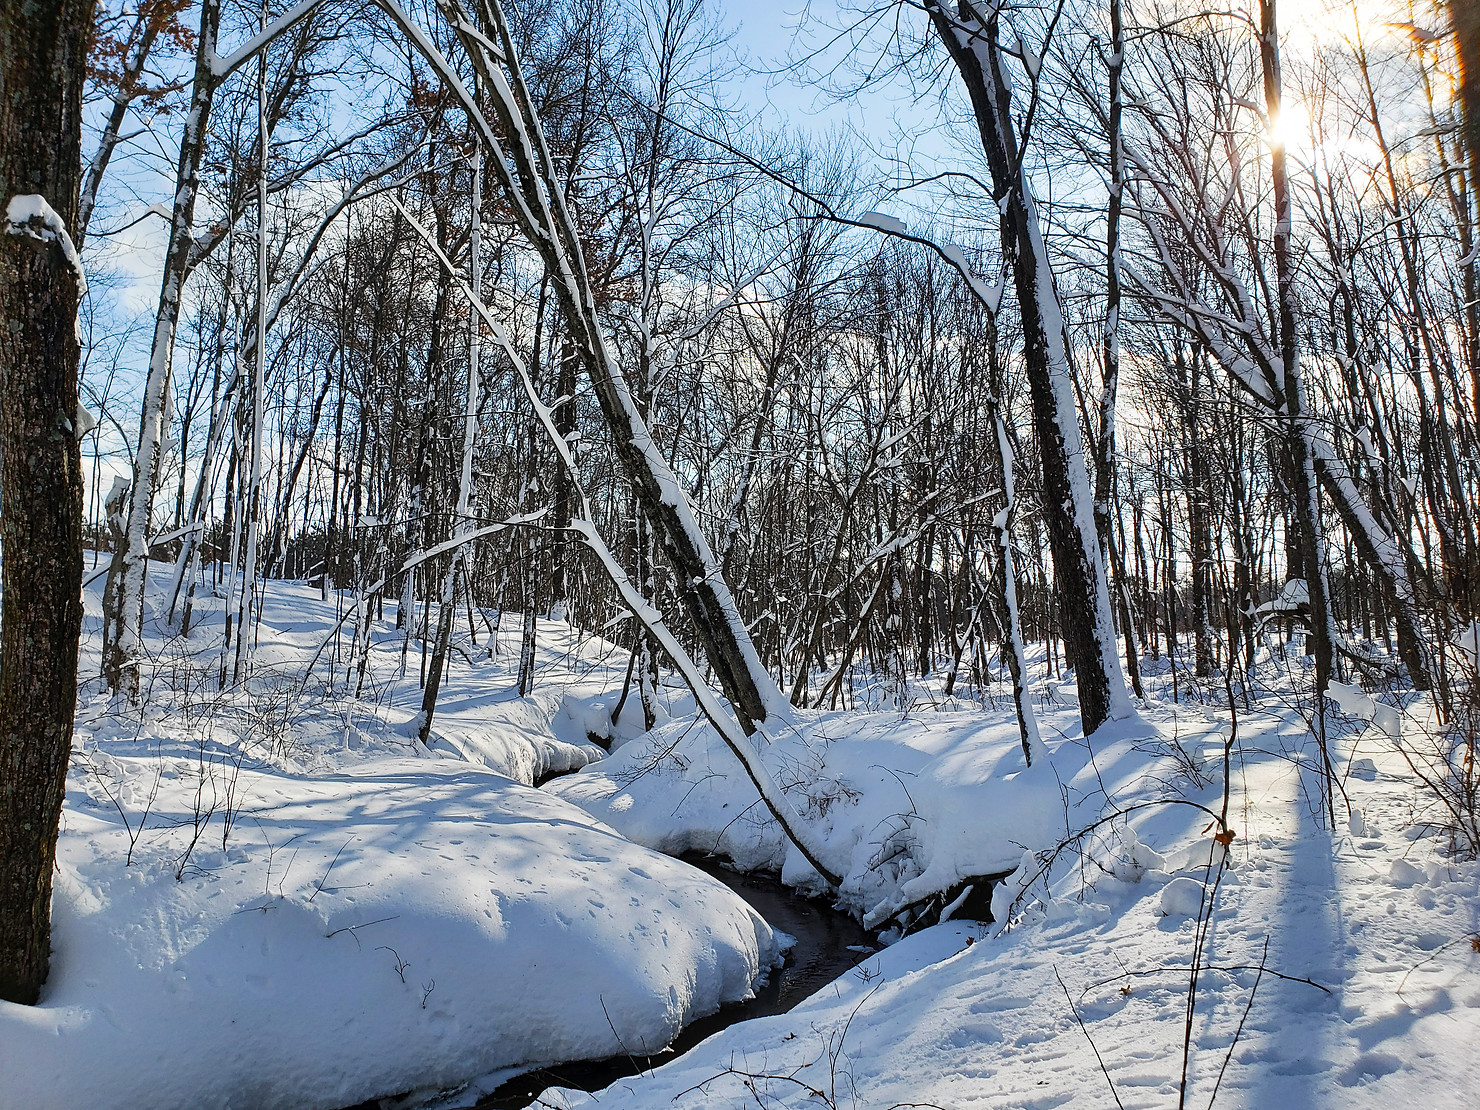 Snowshoeing Photos: Beautiful Winter in Eau Claire County Wisconsin